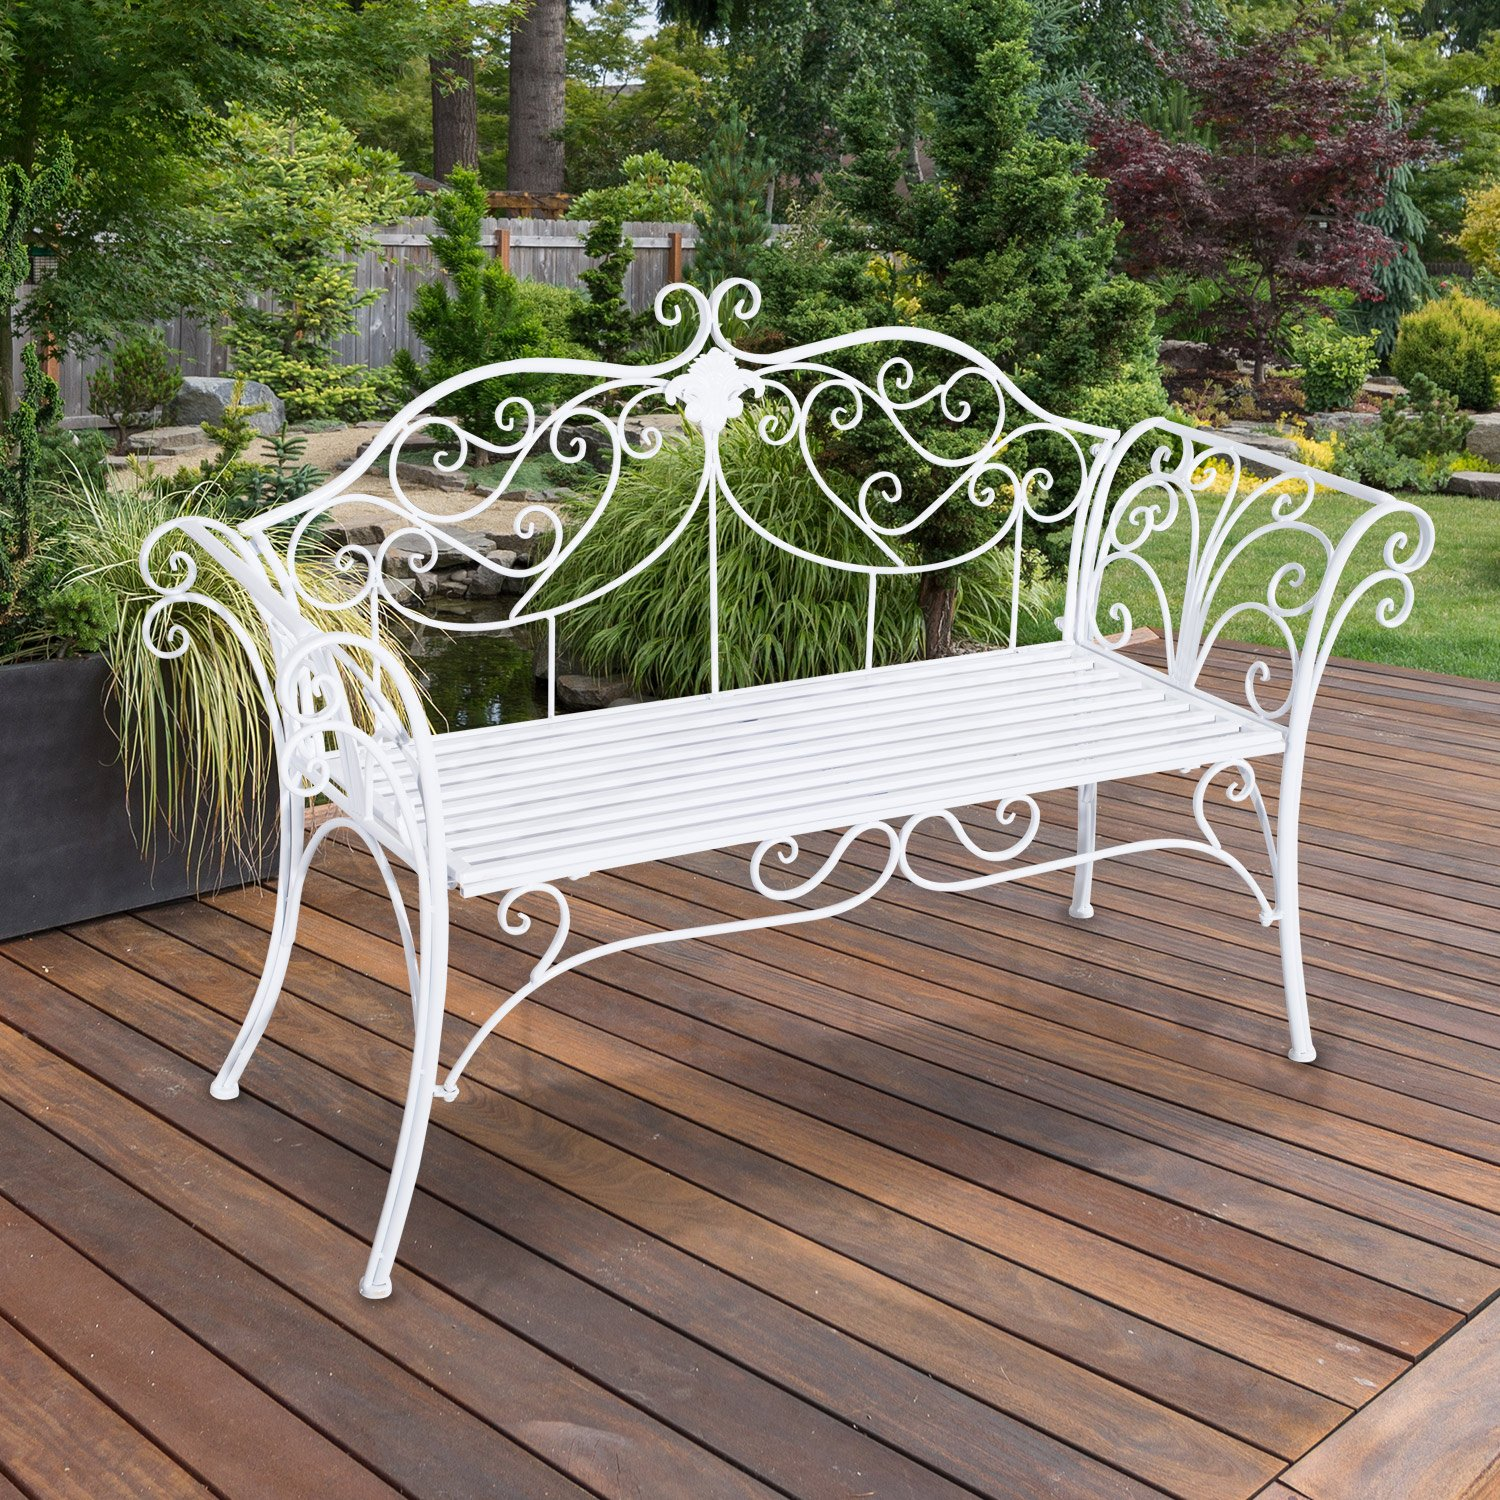 Garden patio seat 2 seater outdoor metal love seat garden for Garden love seat uk